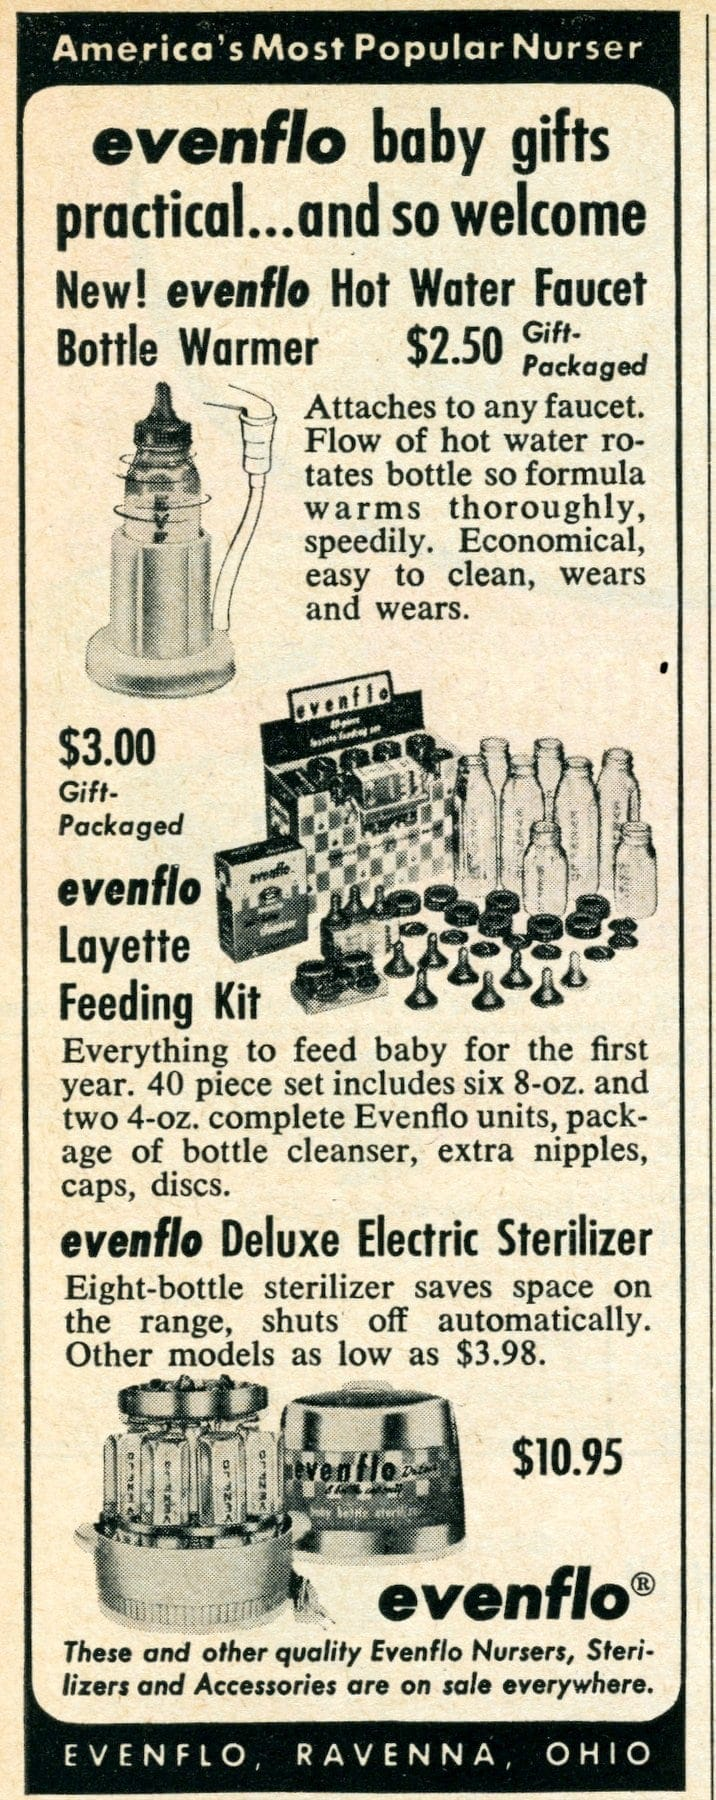 Vintage Evenflo baby bottle gifts from 1958